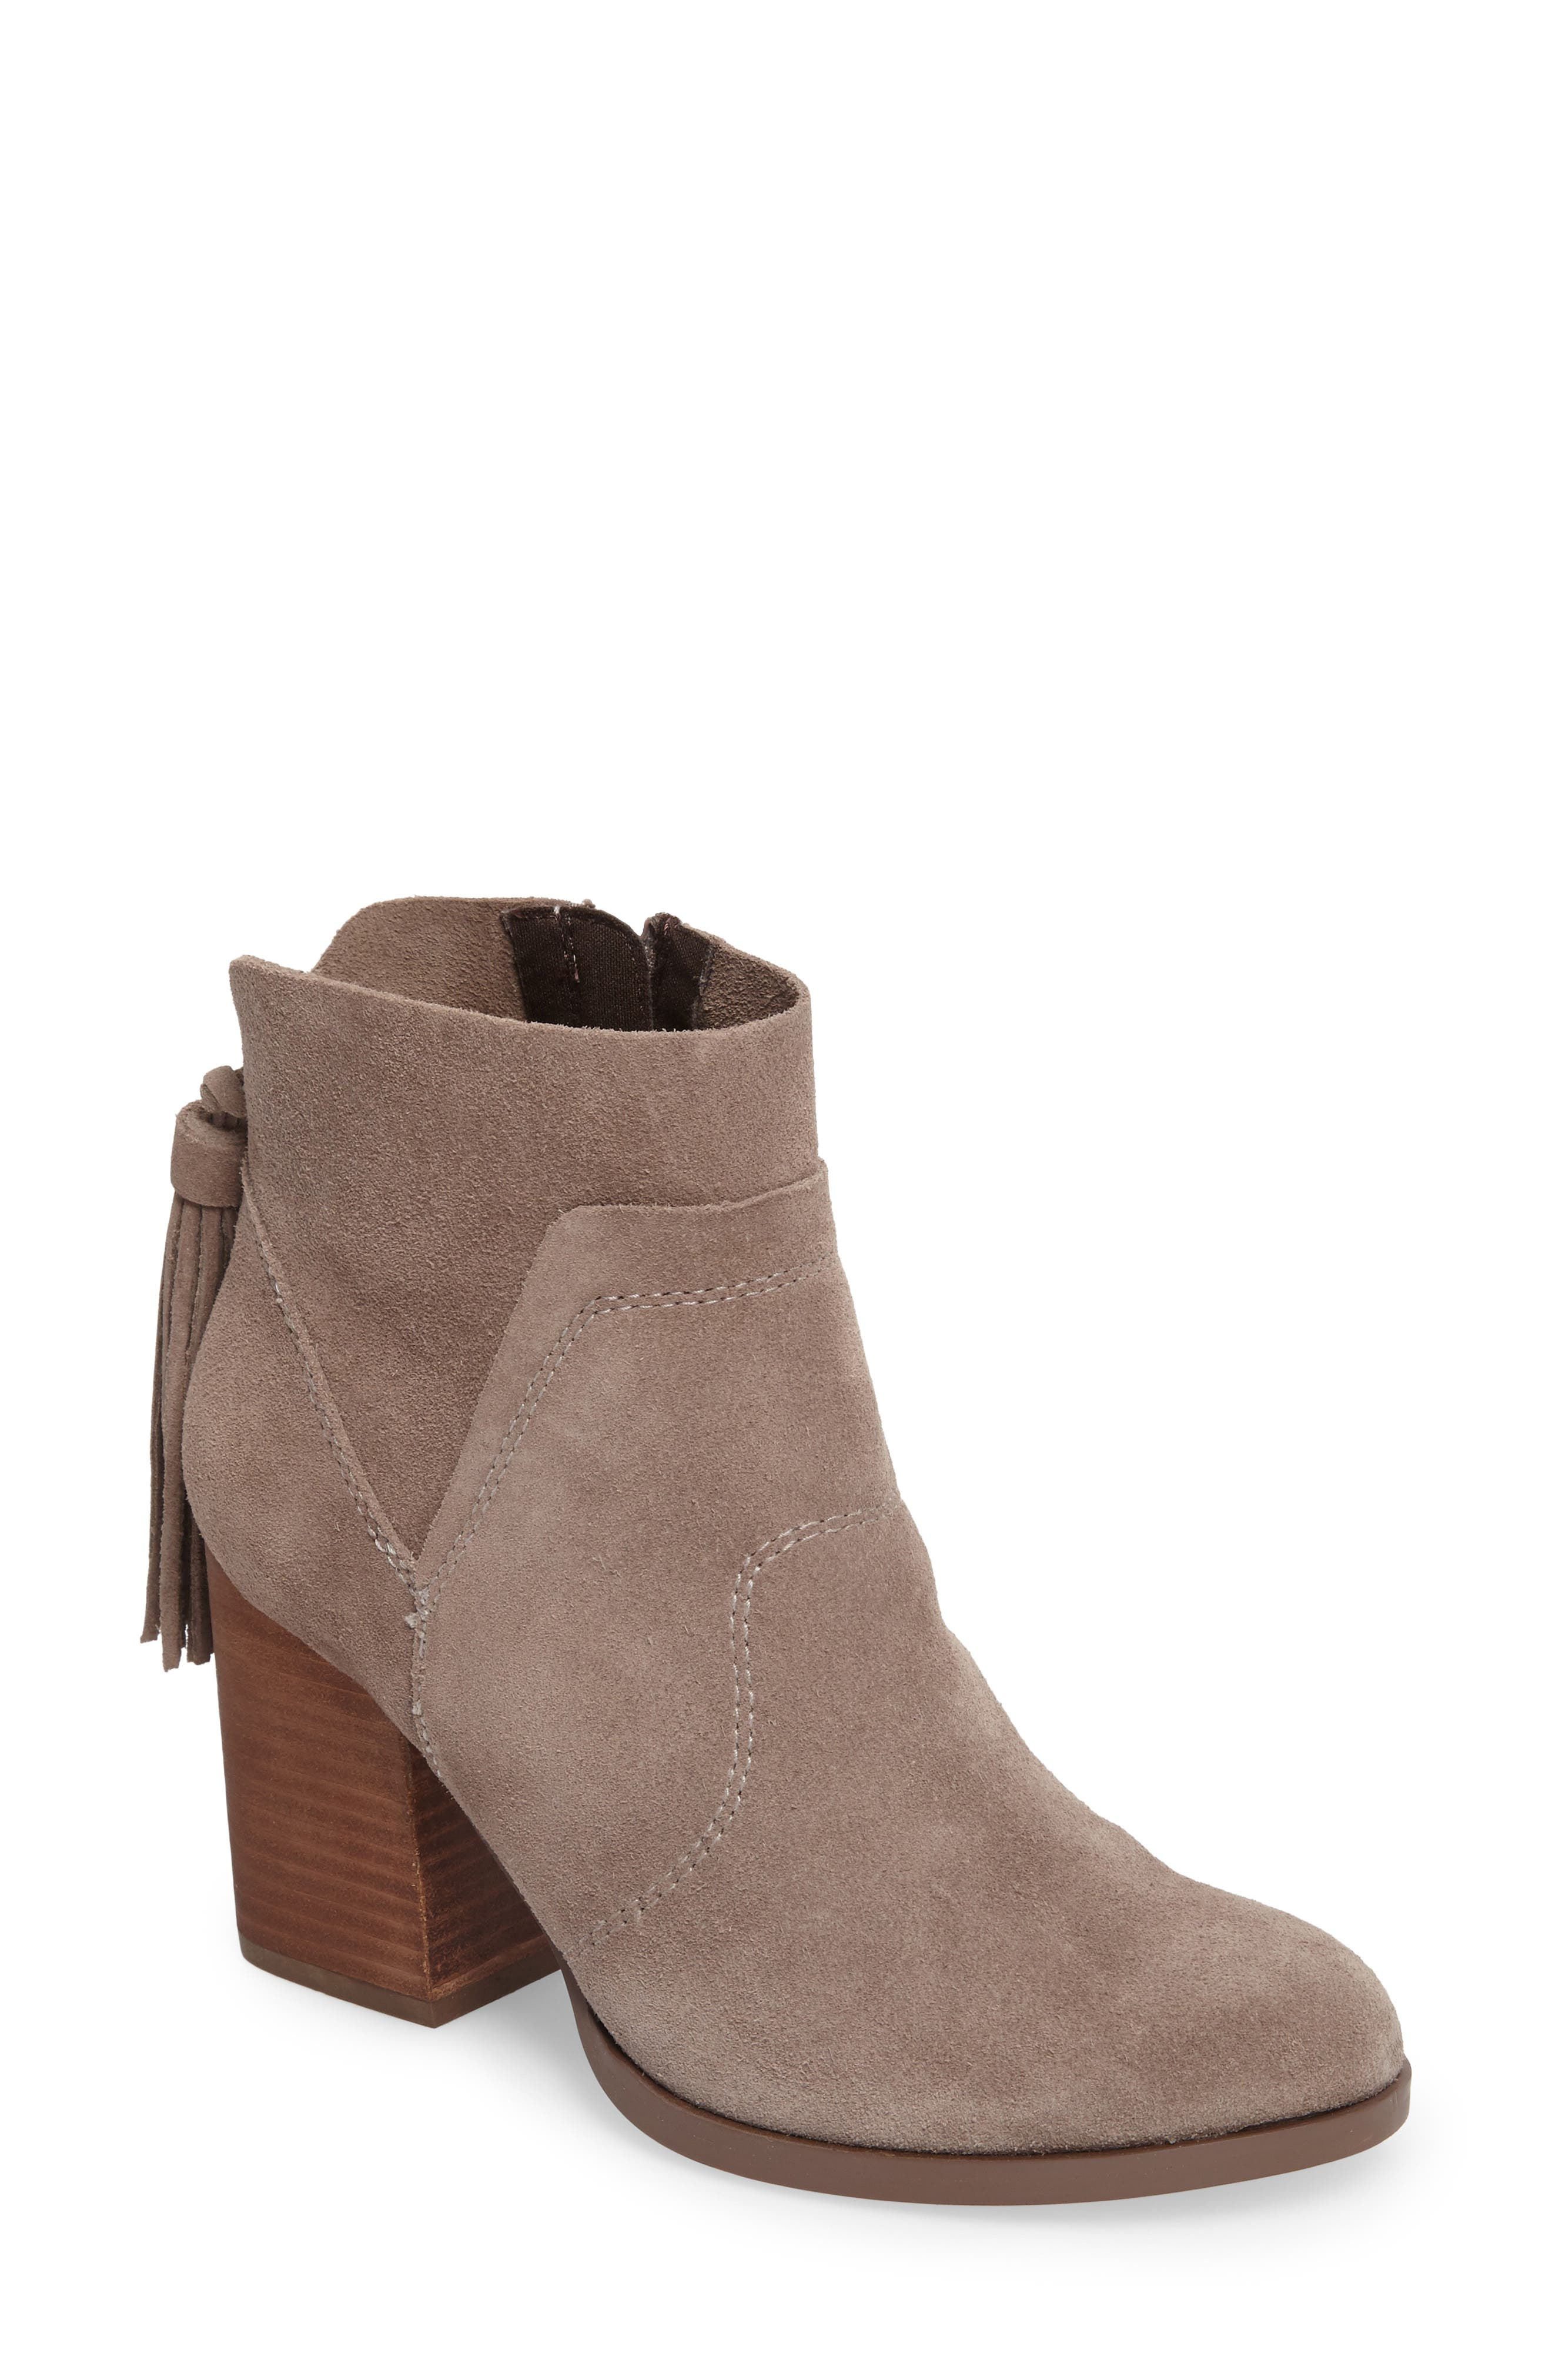 Alternate Image 1 Selected - Sole Society Ambrose Bootie (Women)